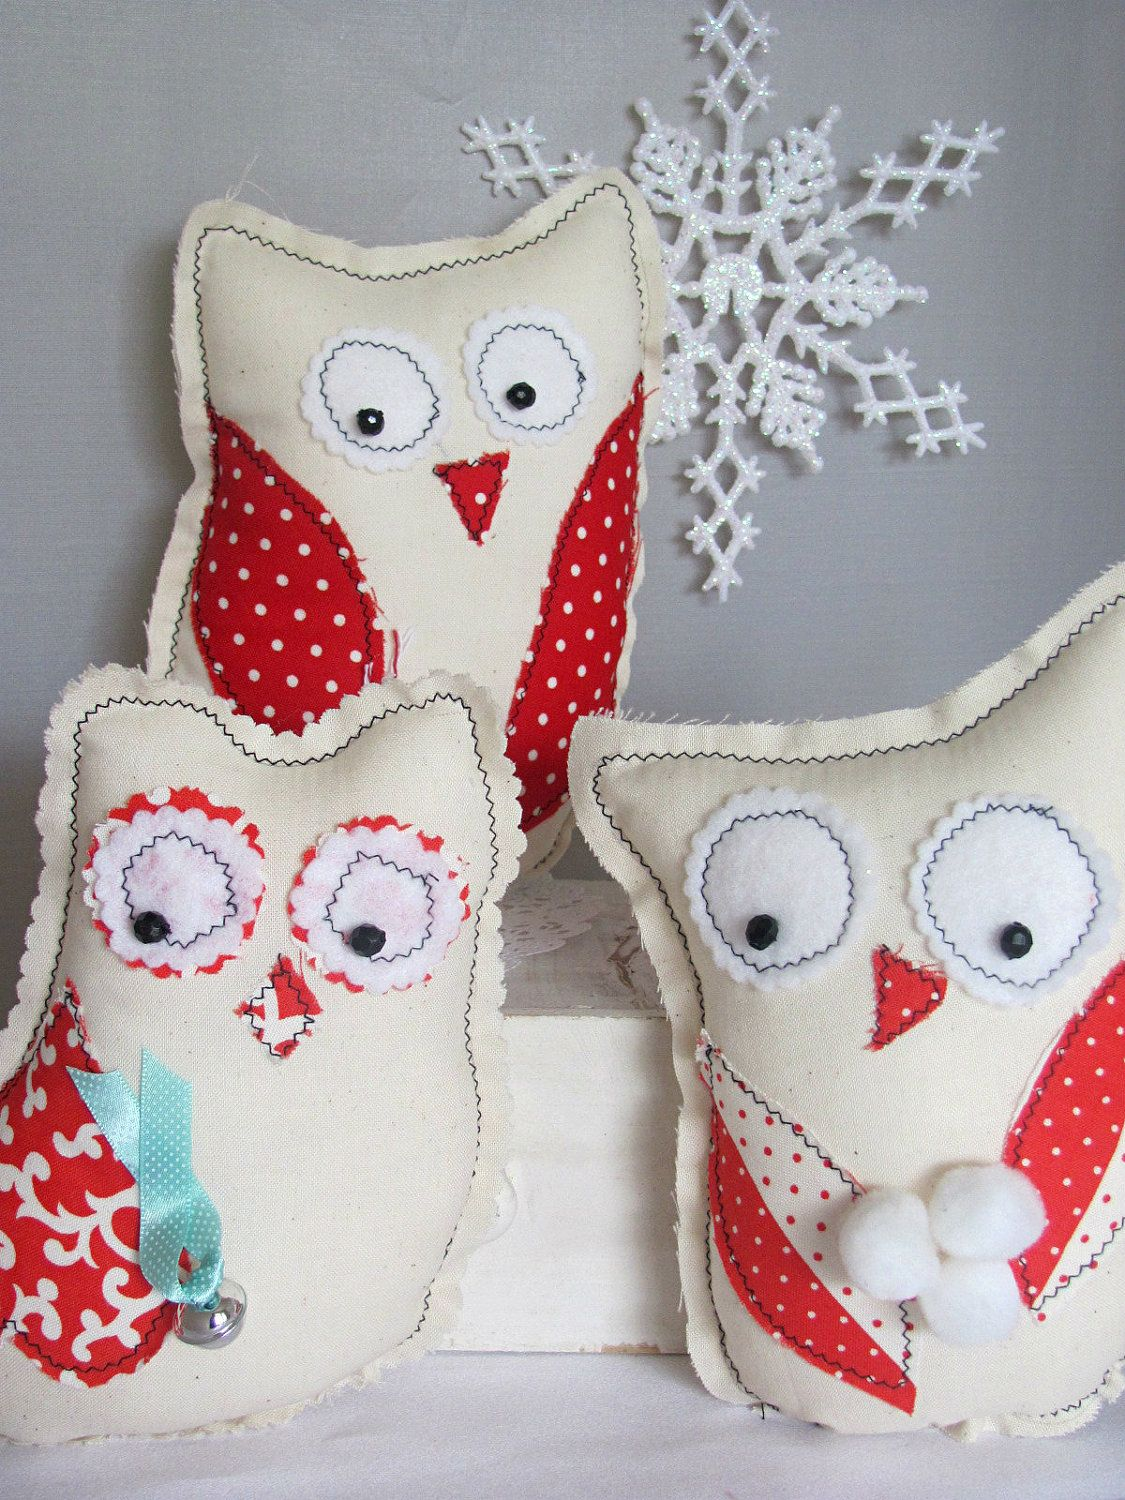 Easy diy folk art winter owl christmas gifts sewing pattern pdf easy diy folk art winter owl christmas gifts sewing pattern pdf tutorial solutioingenieria Images